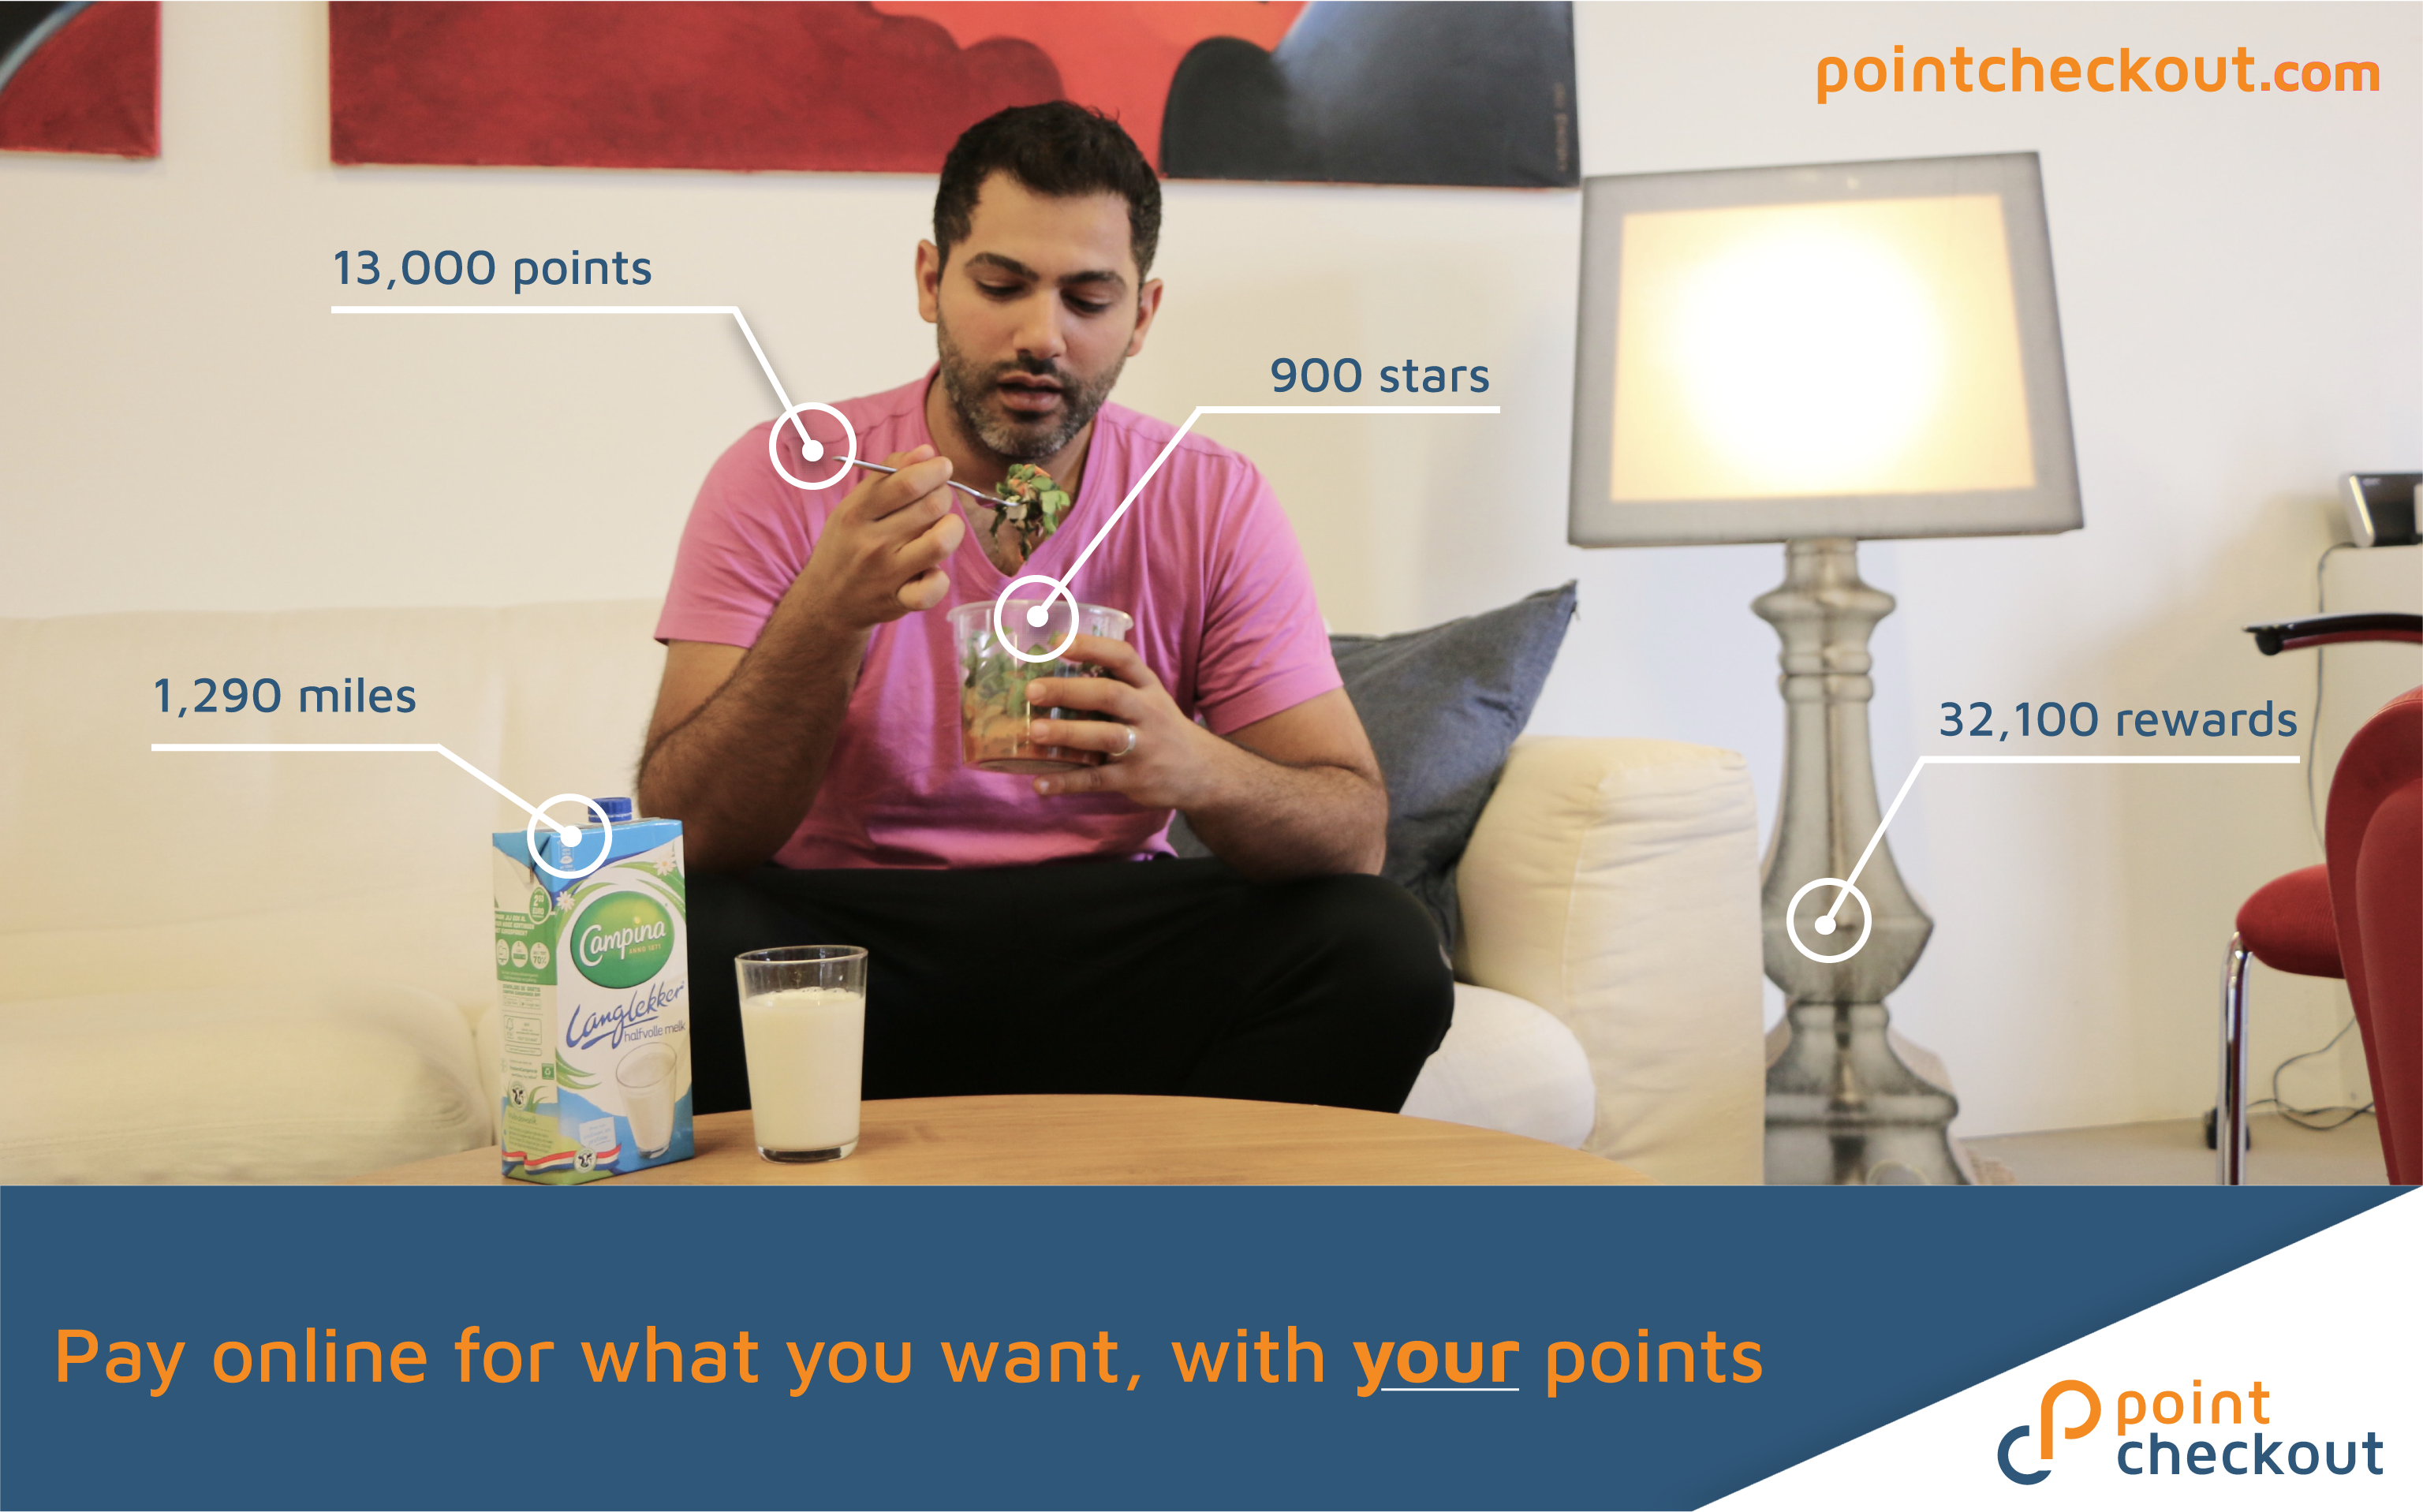 PointCheckout raises $600k to let users pay online with their reward points